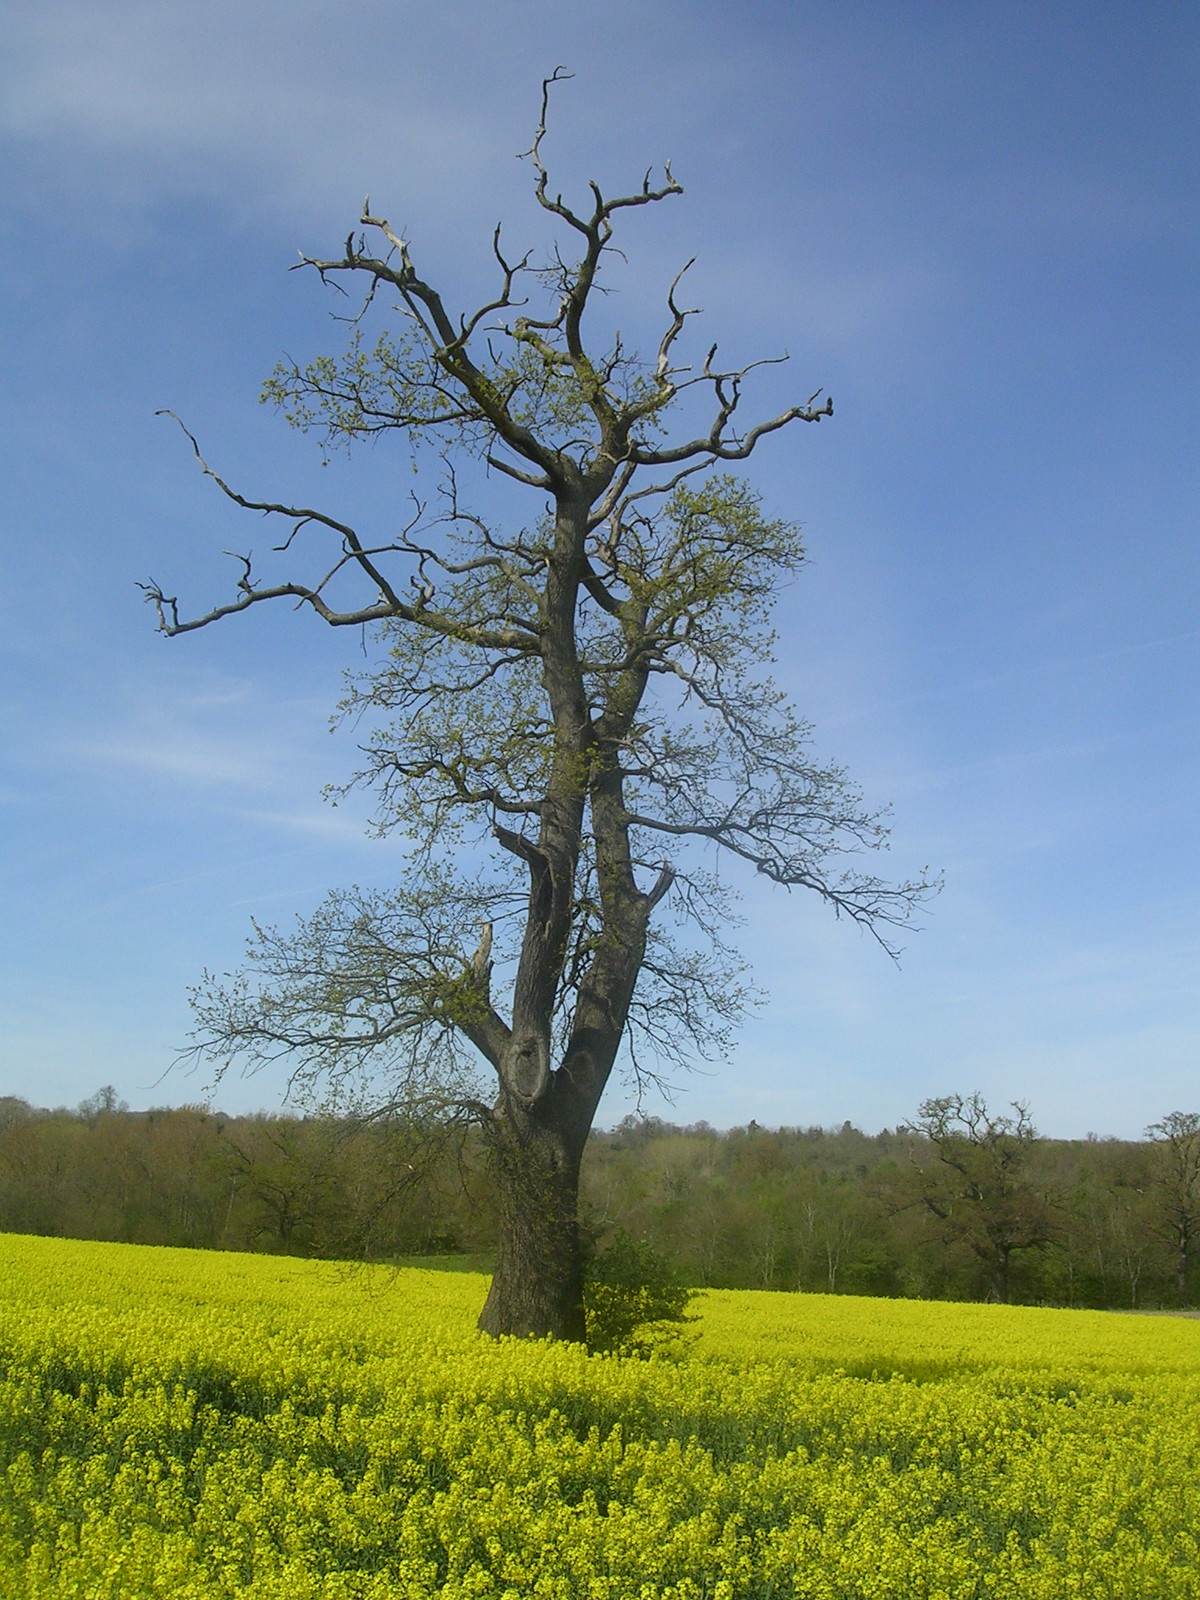 Tree in rapefield Yalding to Sevenoaks